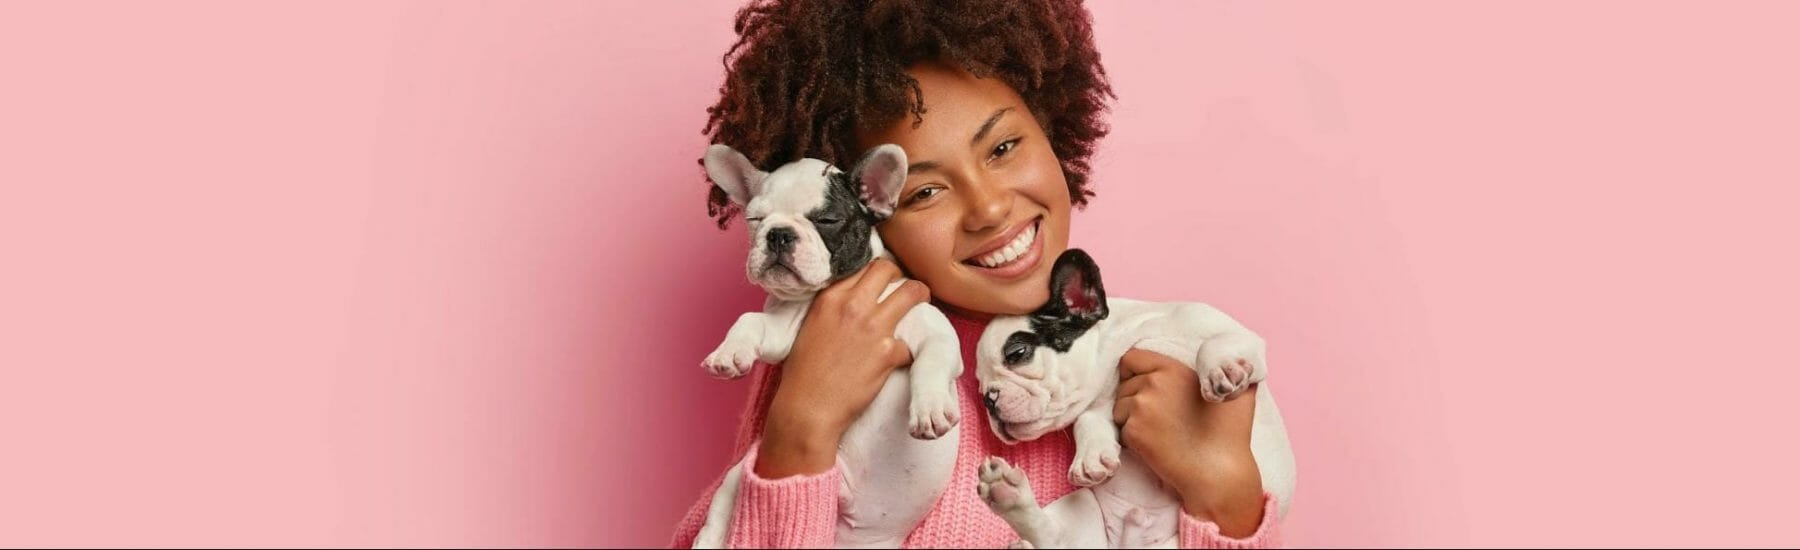 Woman holding two dogs against a pink background